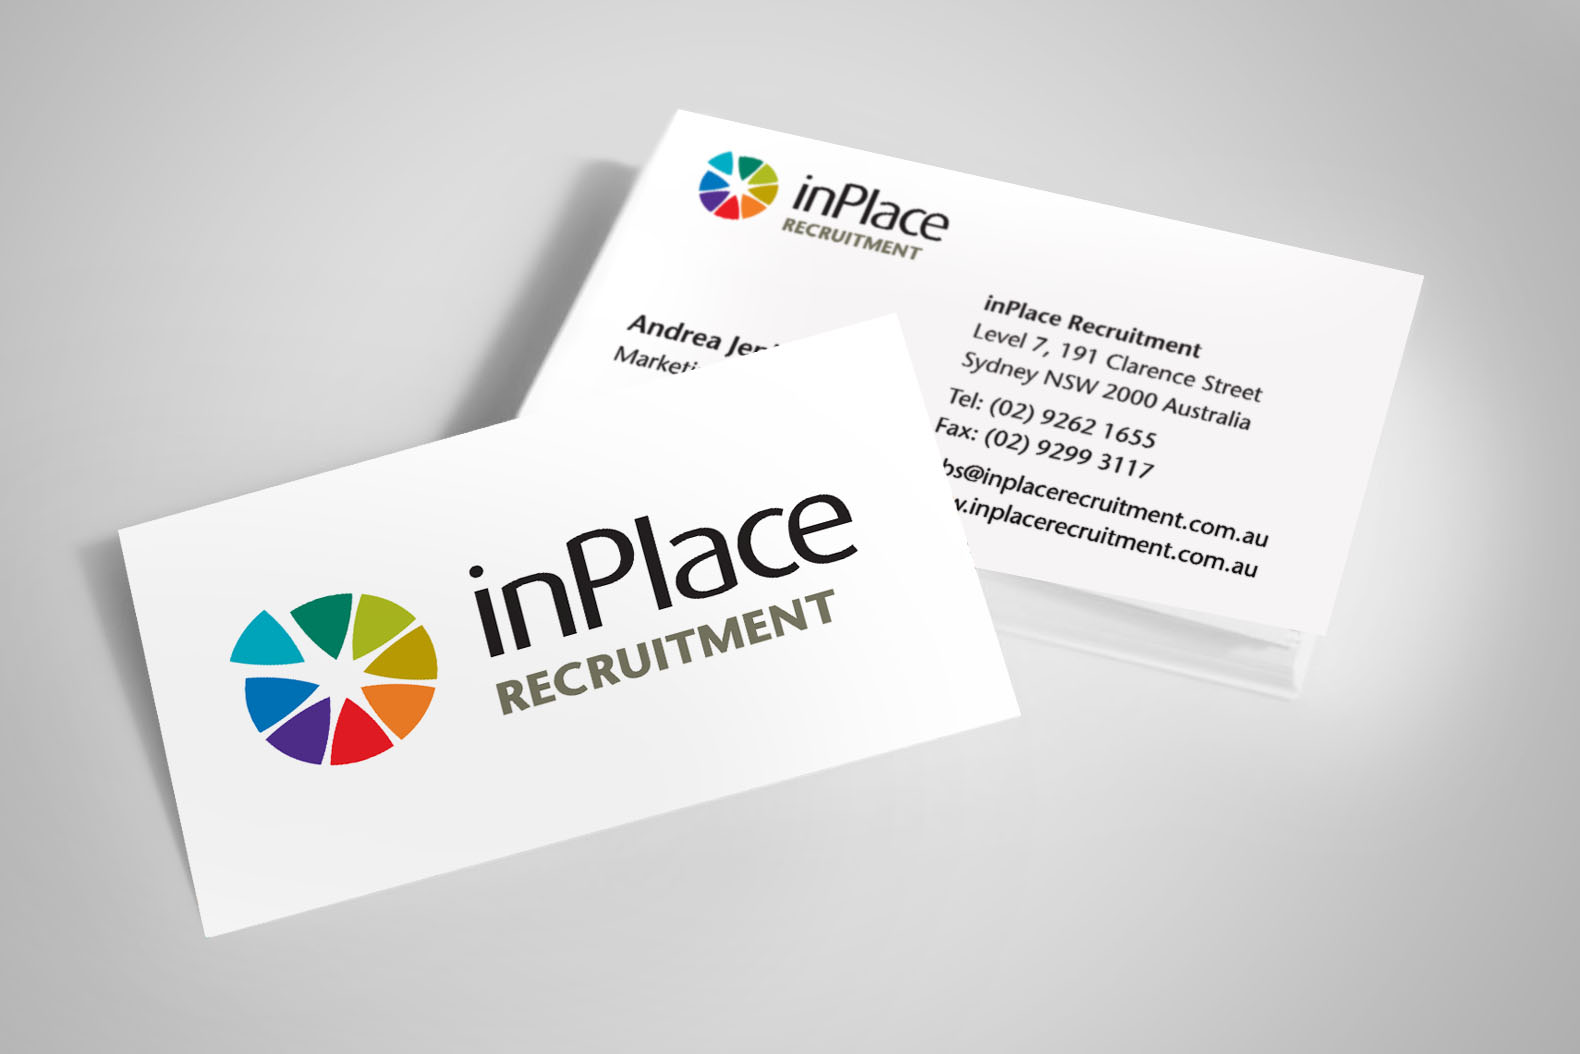 inPlace Recruitment